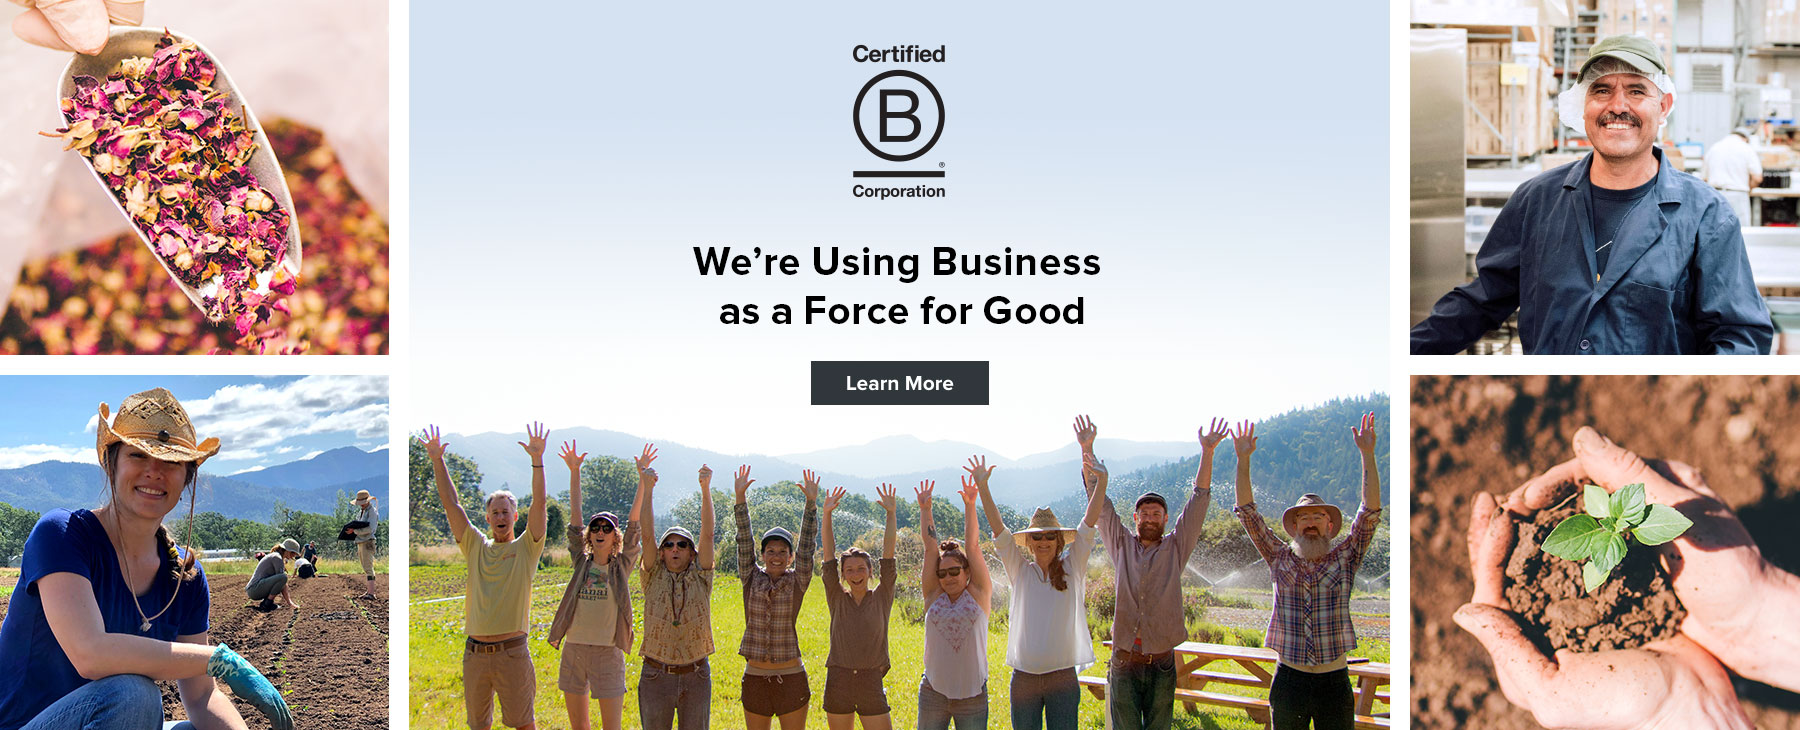 Banyan Botanicals announces its B Corporation Certification, joining over 2,000 socially responsible companies using business as a force for good.